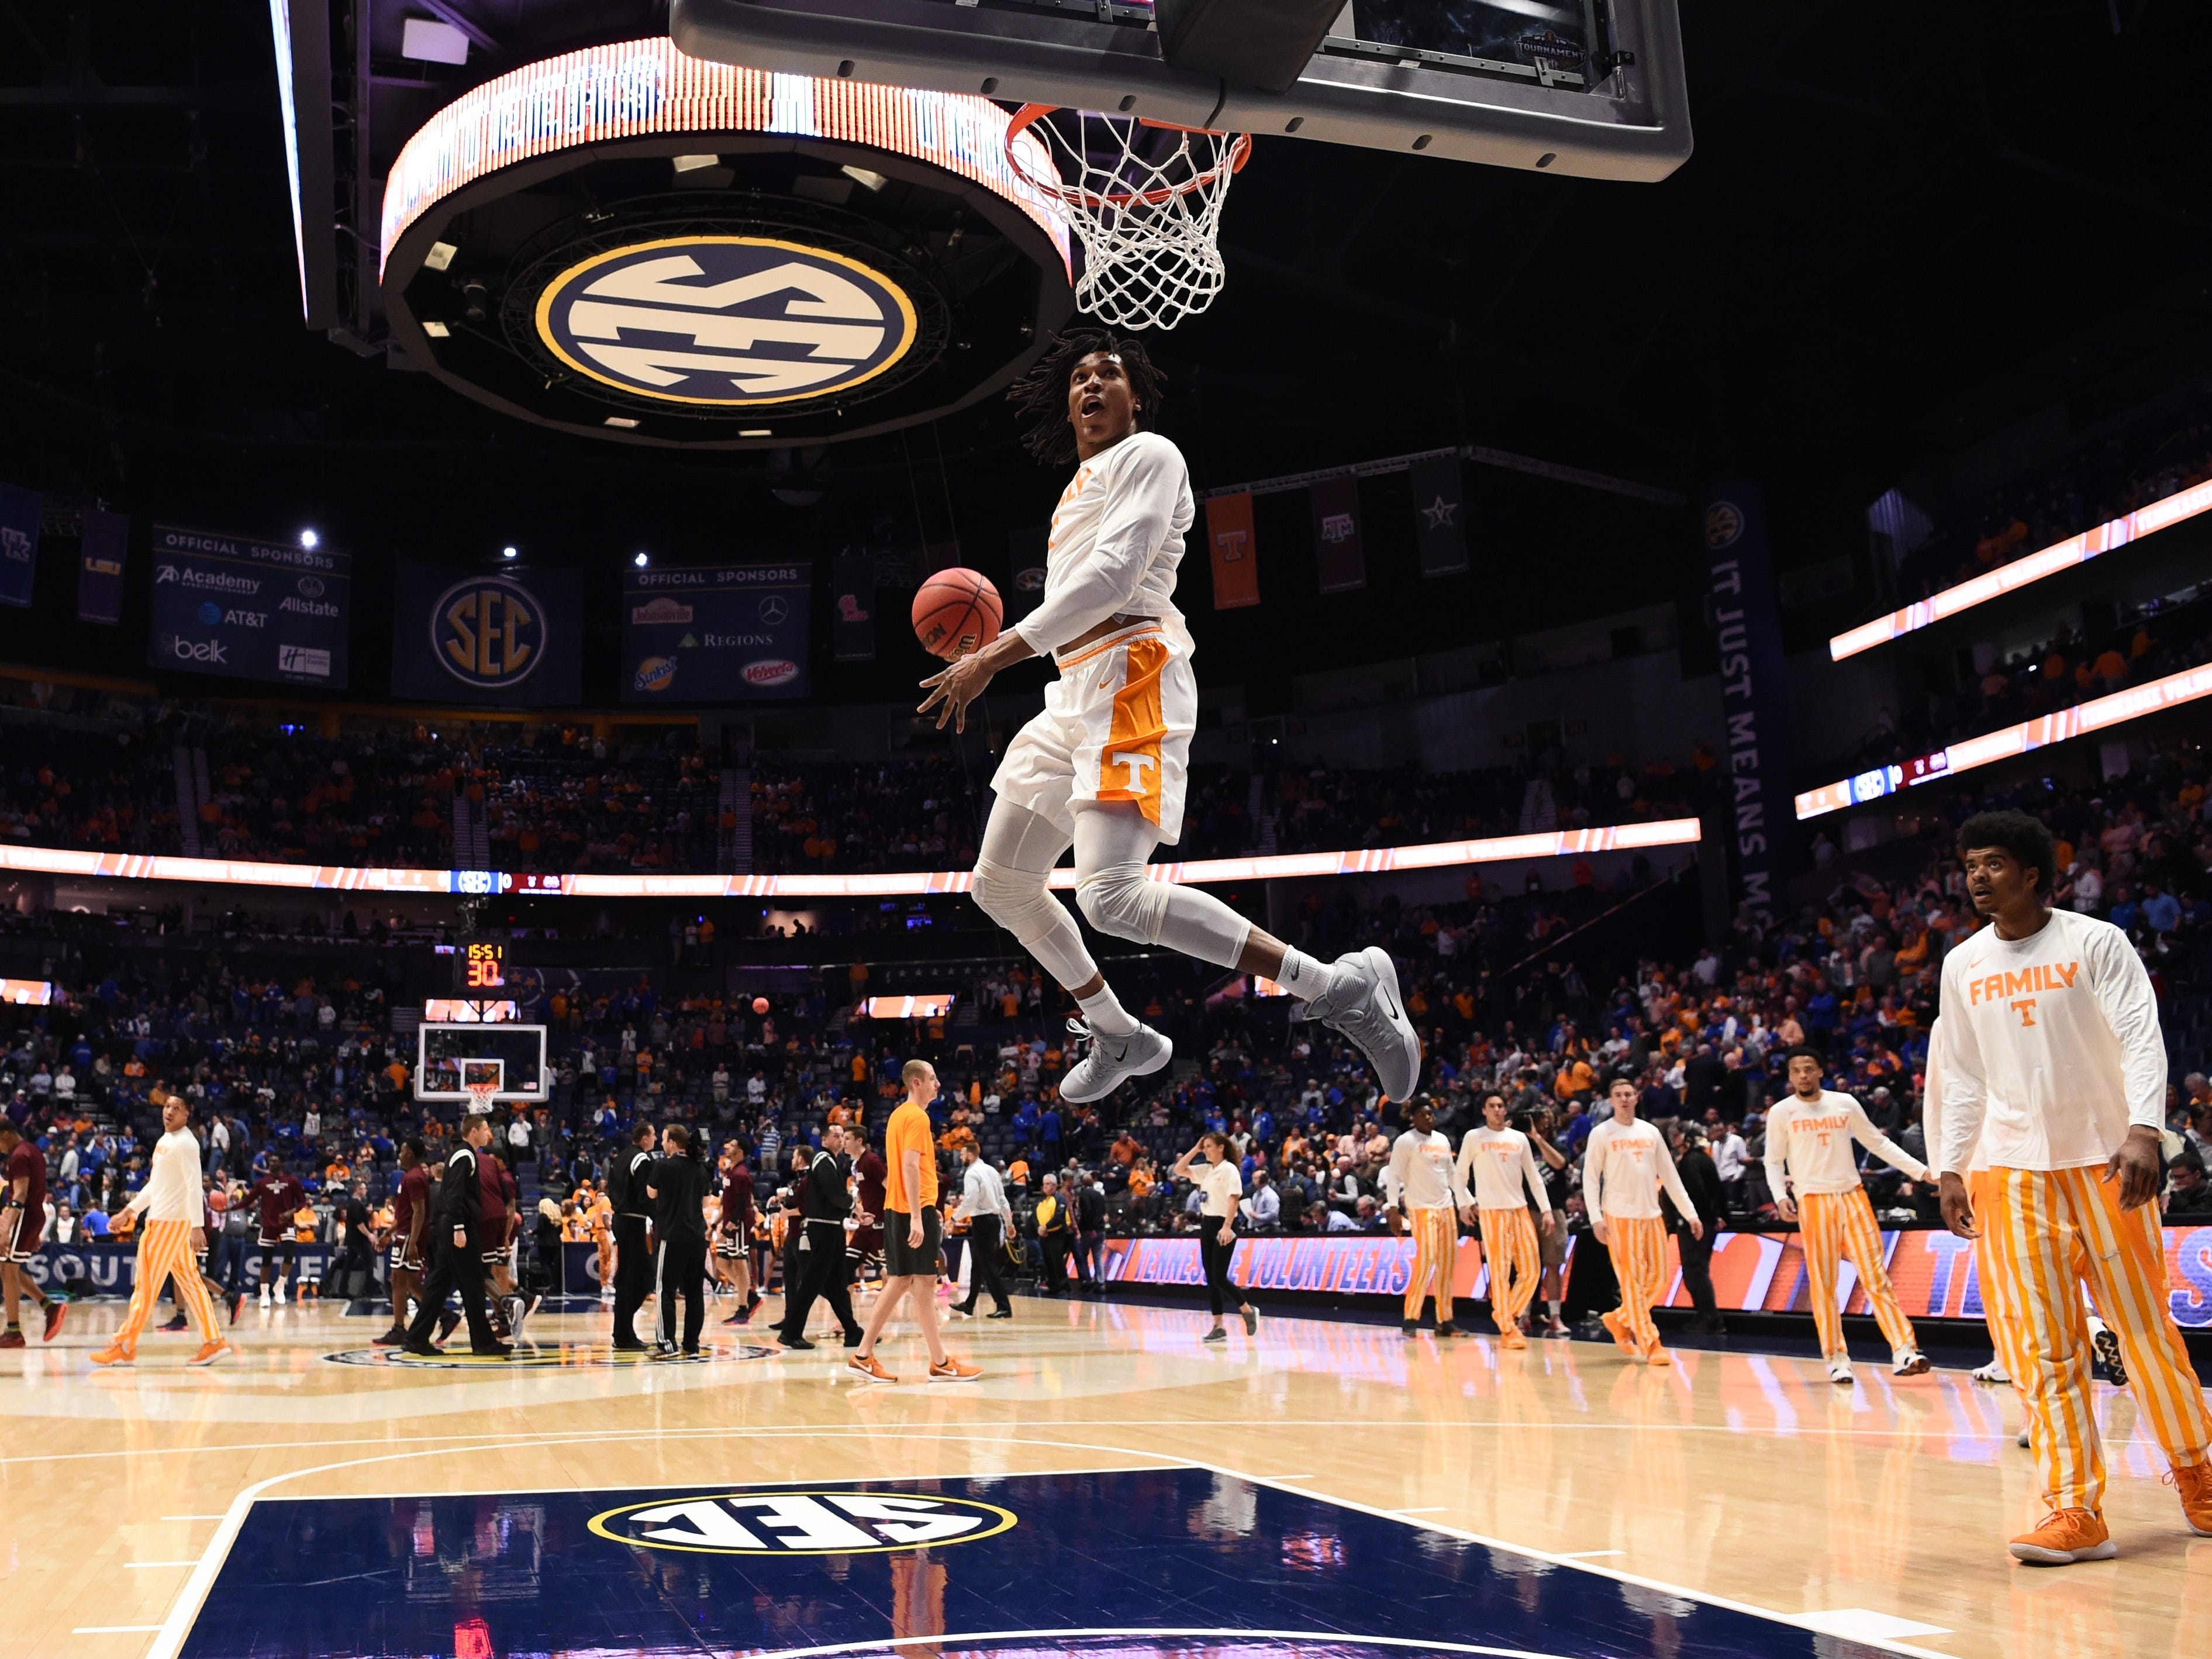 UT players warm up before the SEC Men's Basketball Tournament game against Mississippi State at Bridgestone Arena in Nashville, Tenn., Friday, March 15, 2019.